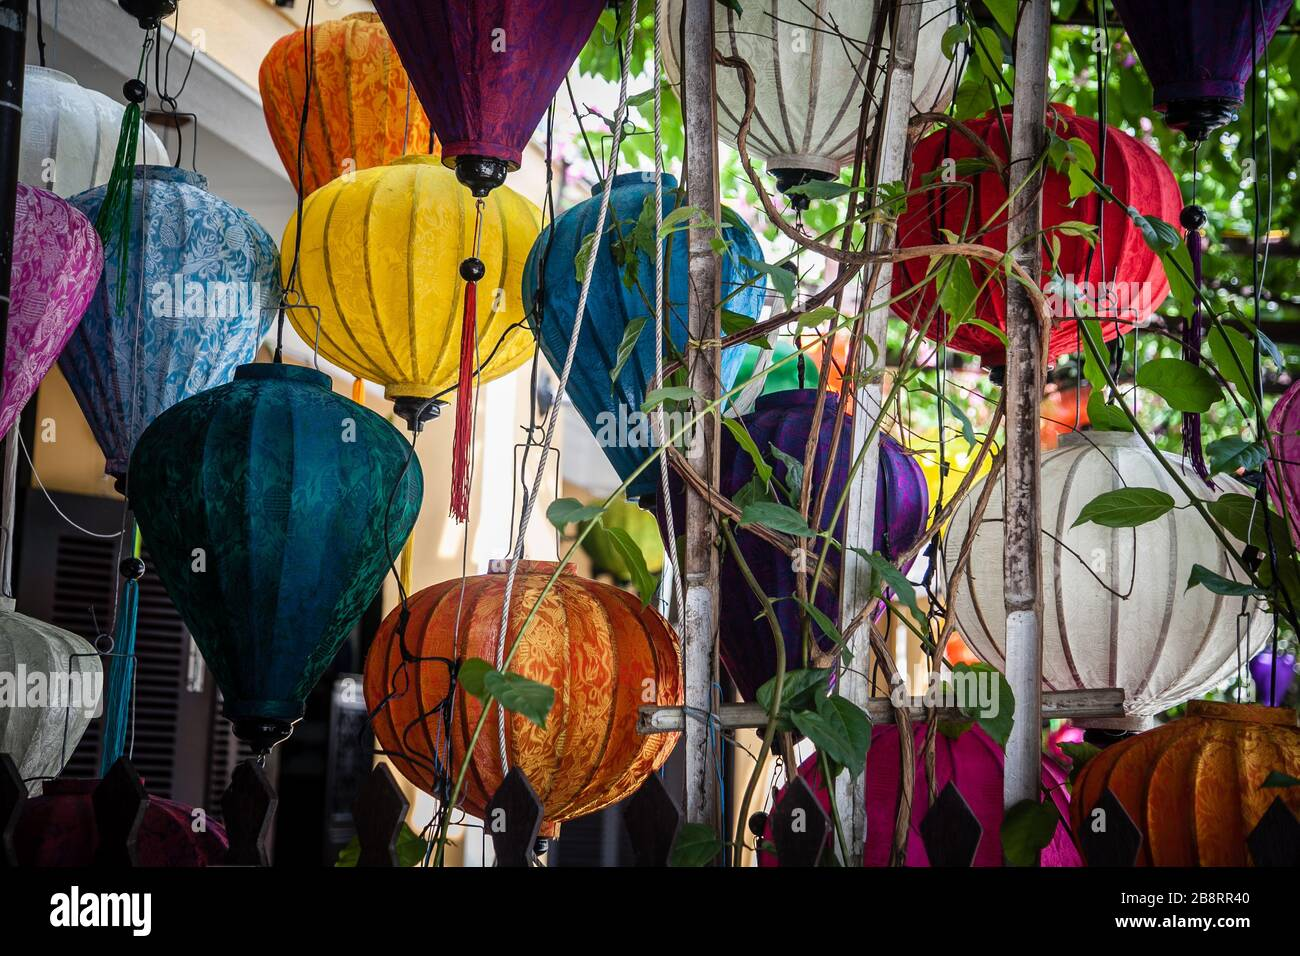 Lanterns in Hoi An Stock Photo